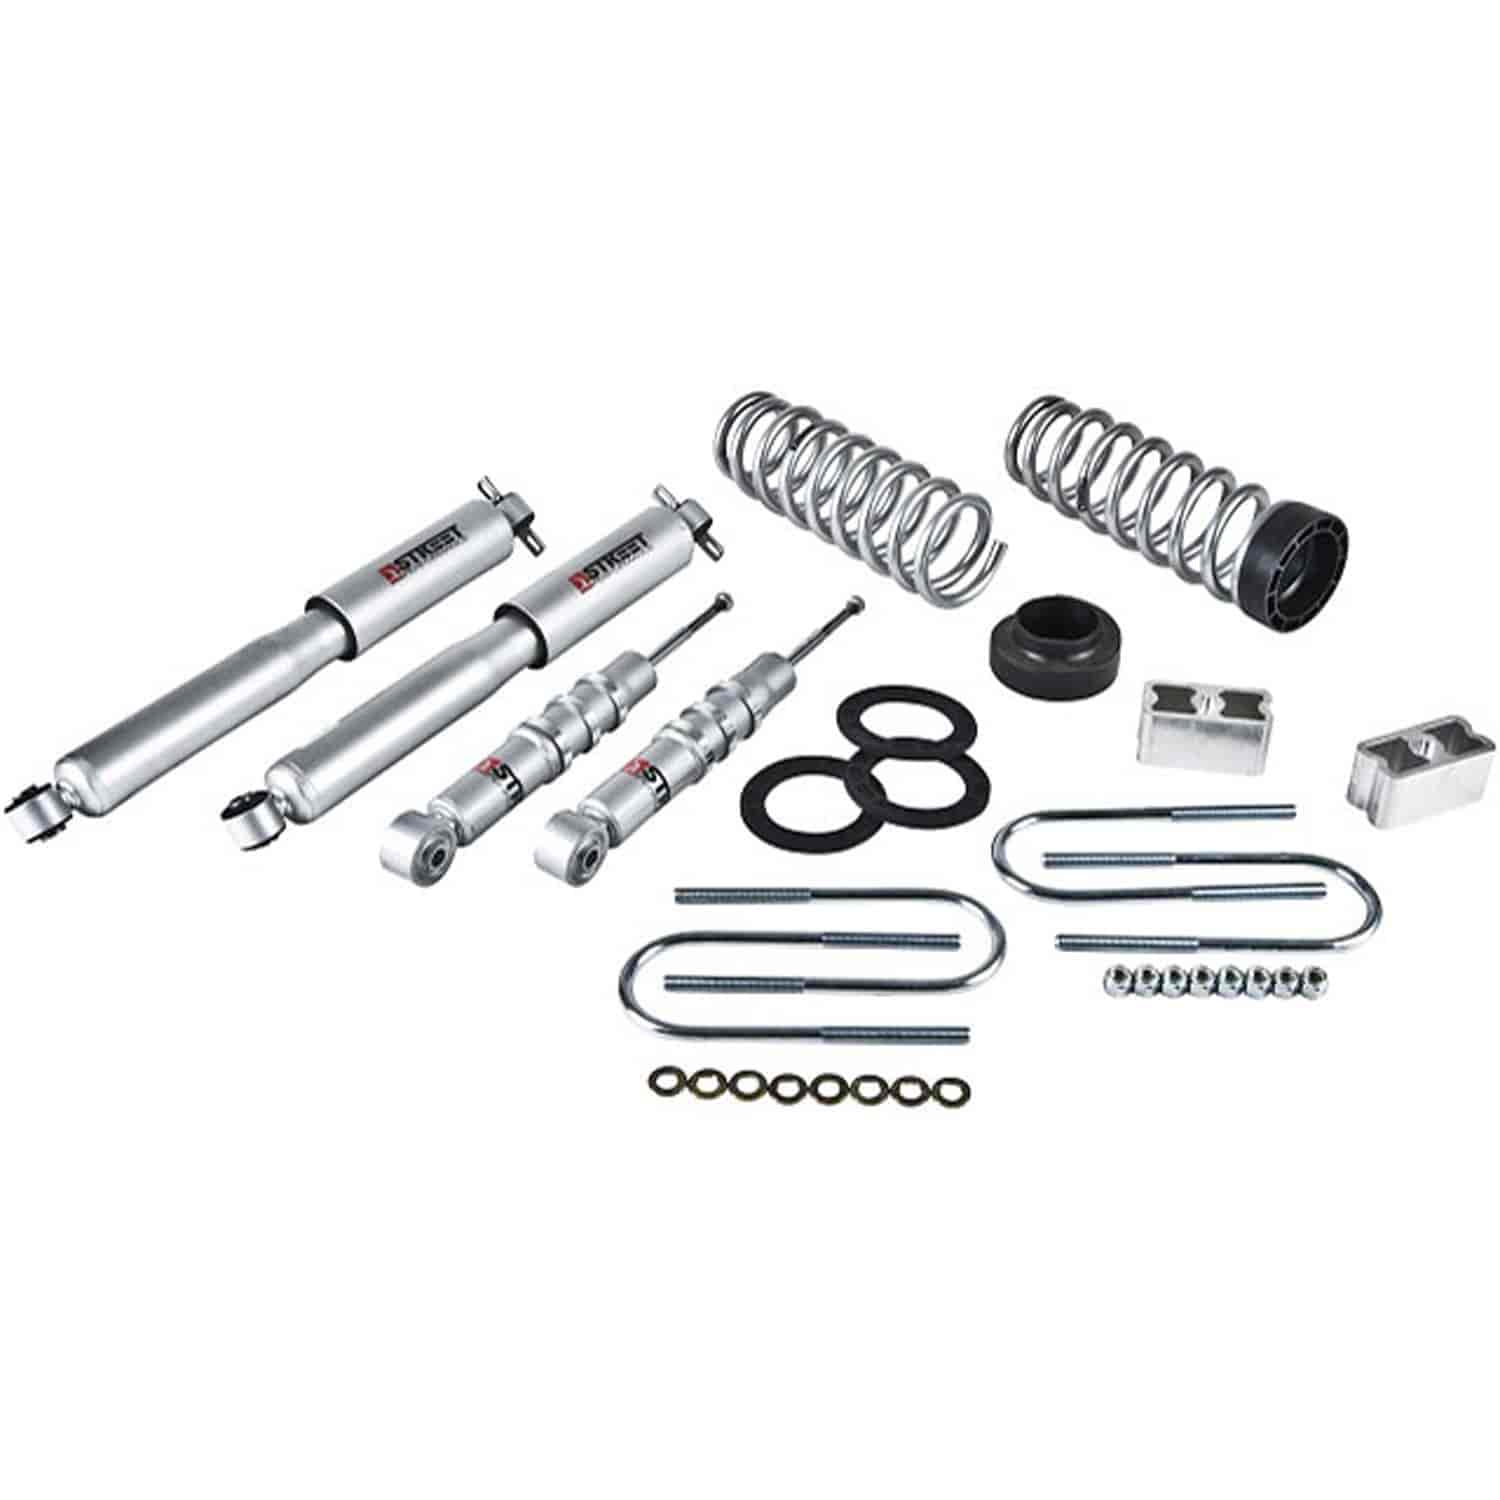 Belltech 607sp Complete Lowering Kit For Chevy